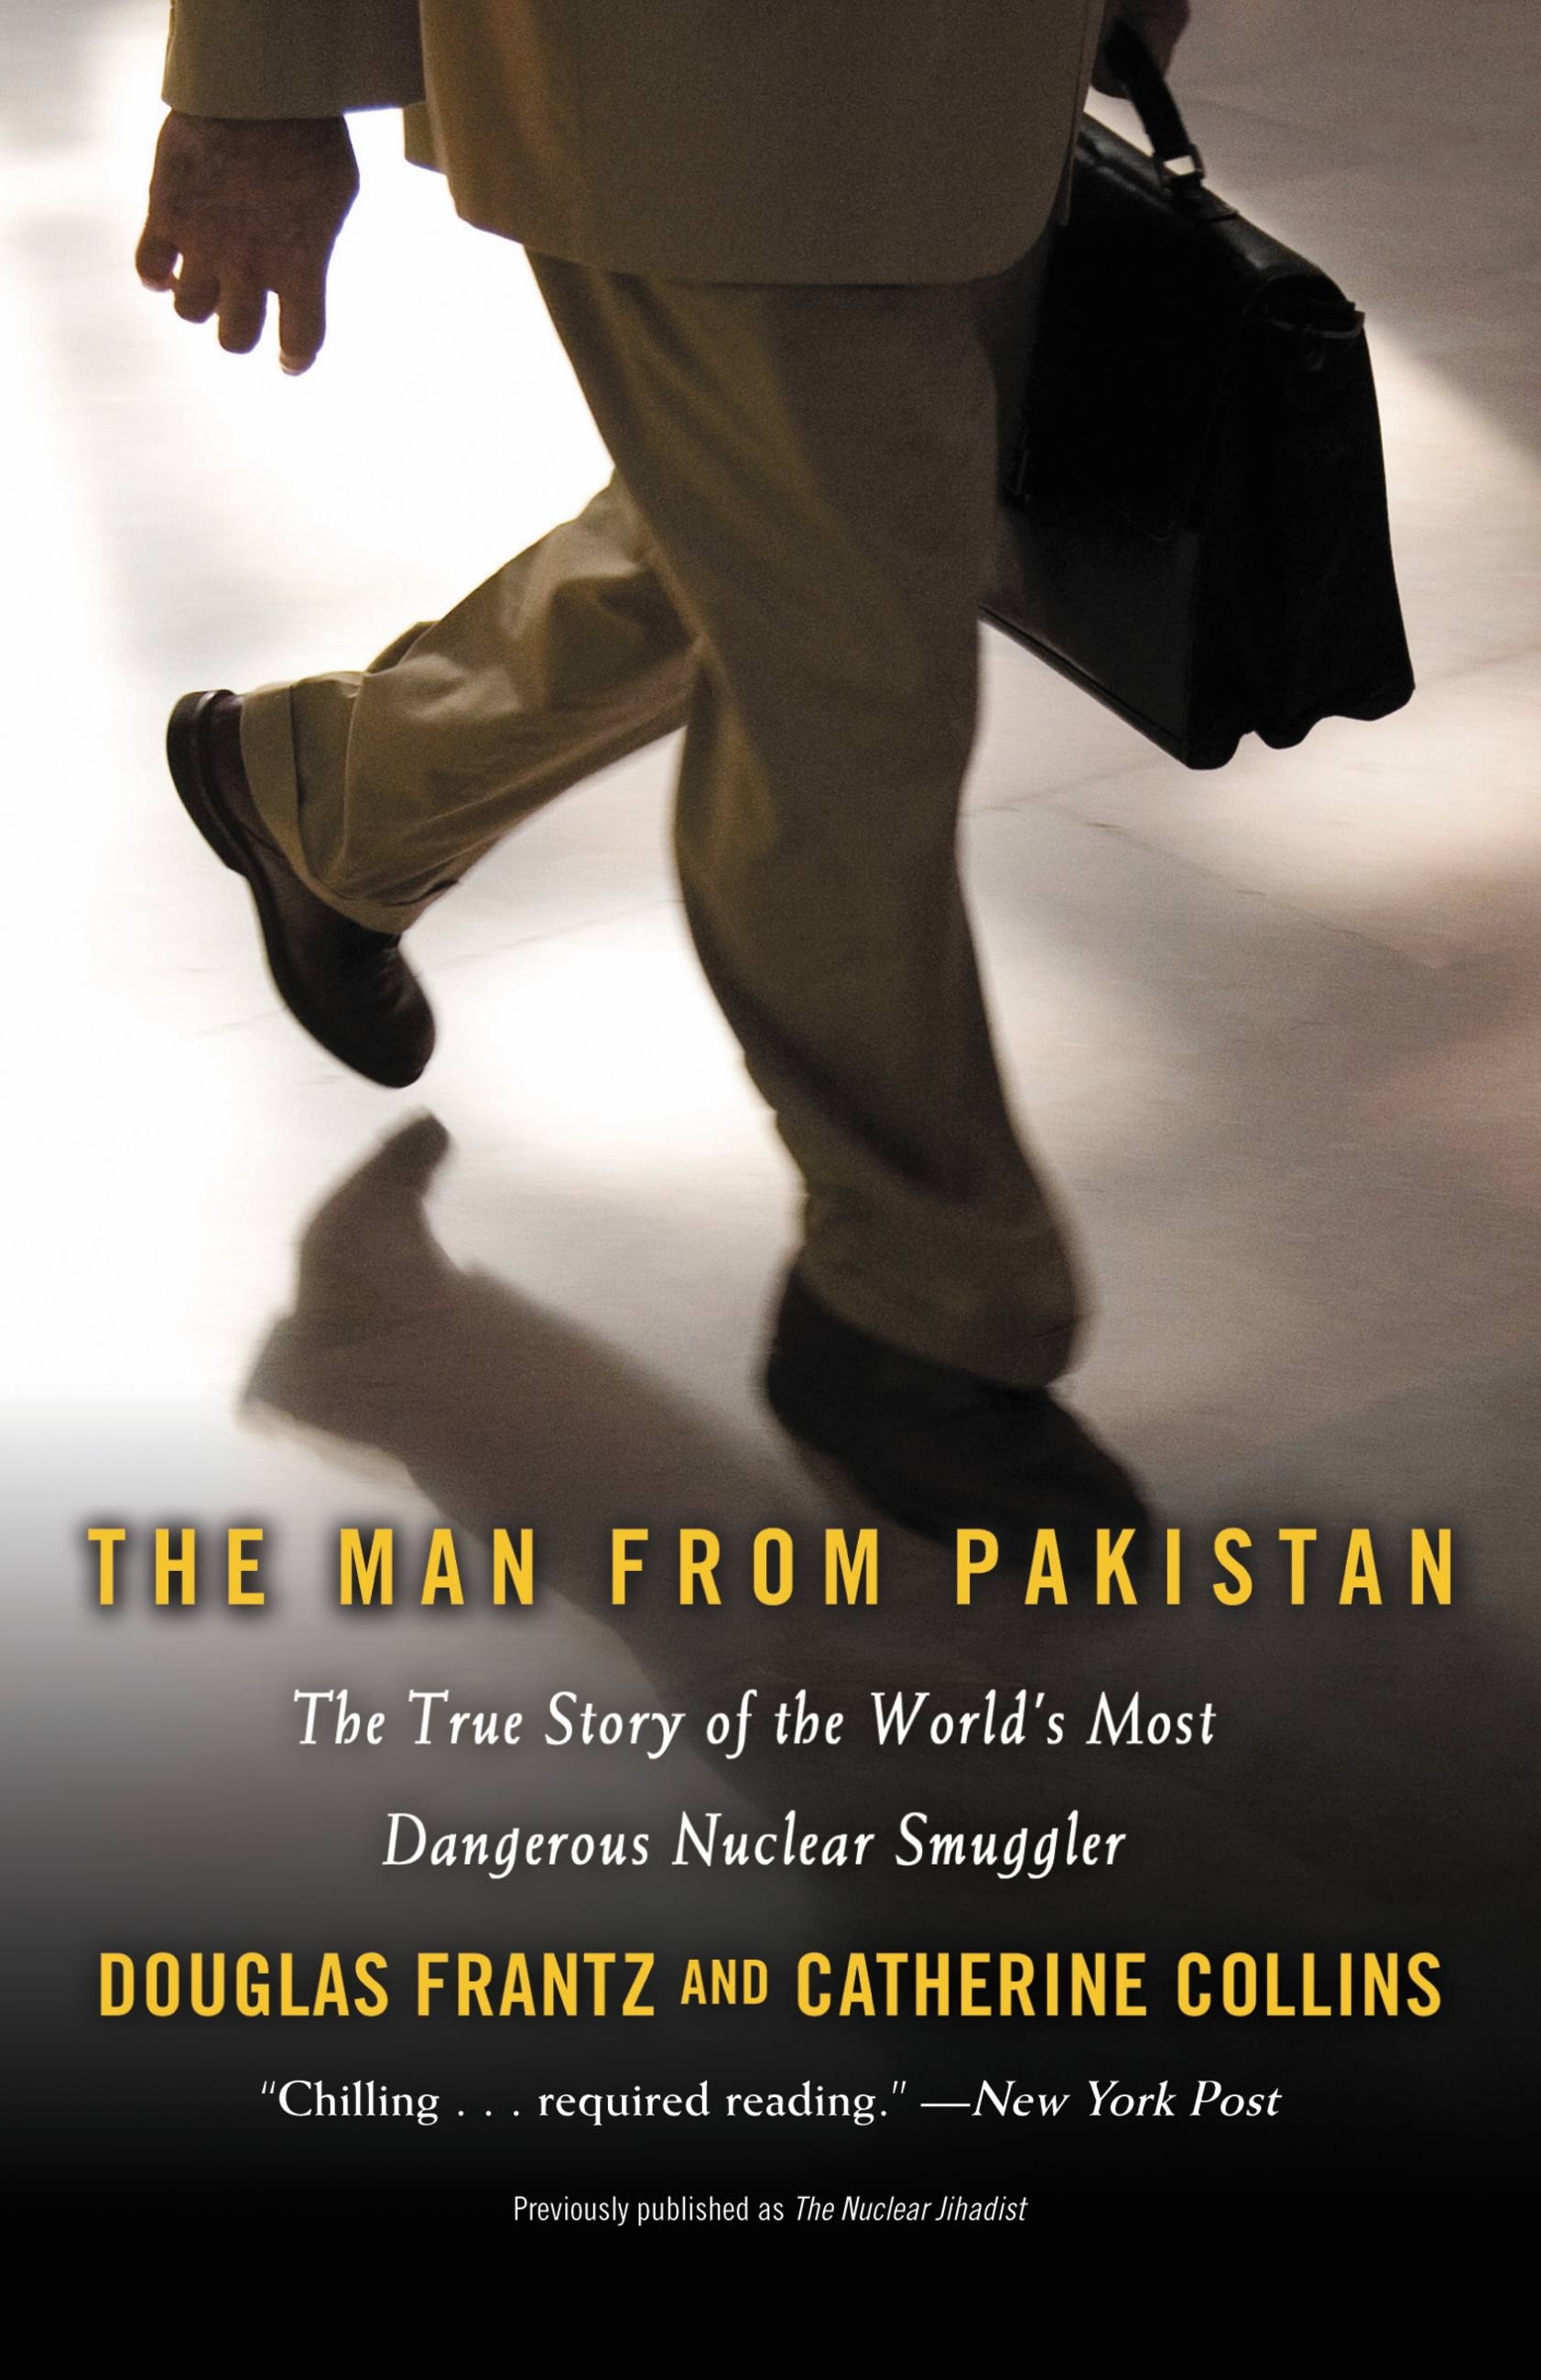 The Man from Pakistan